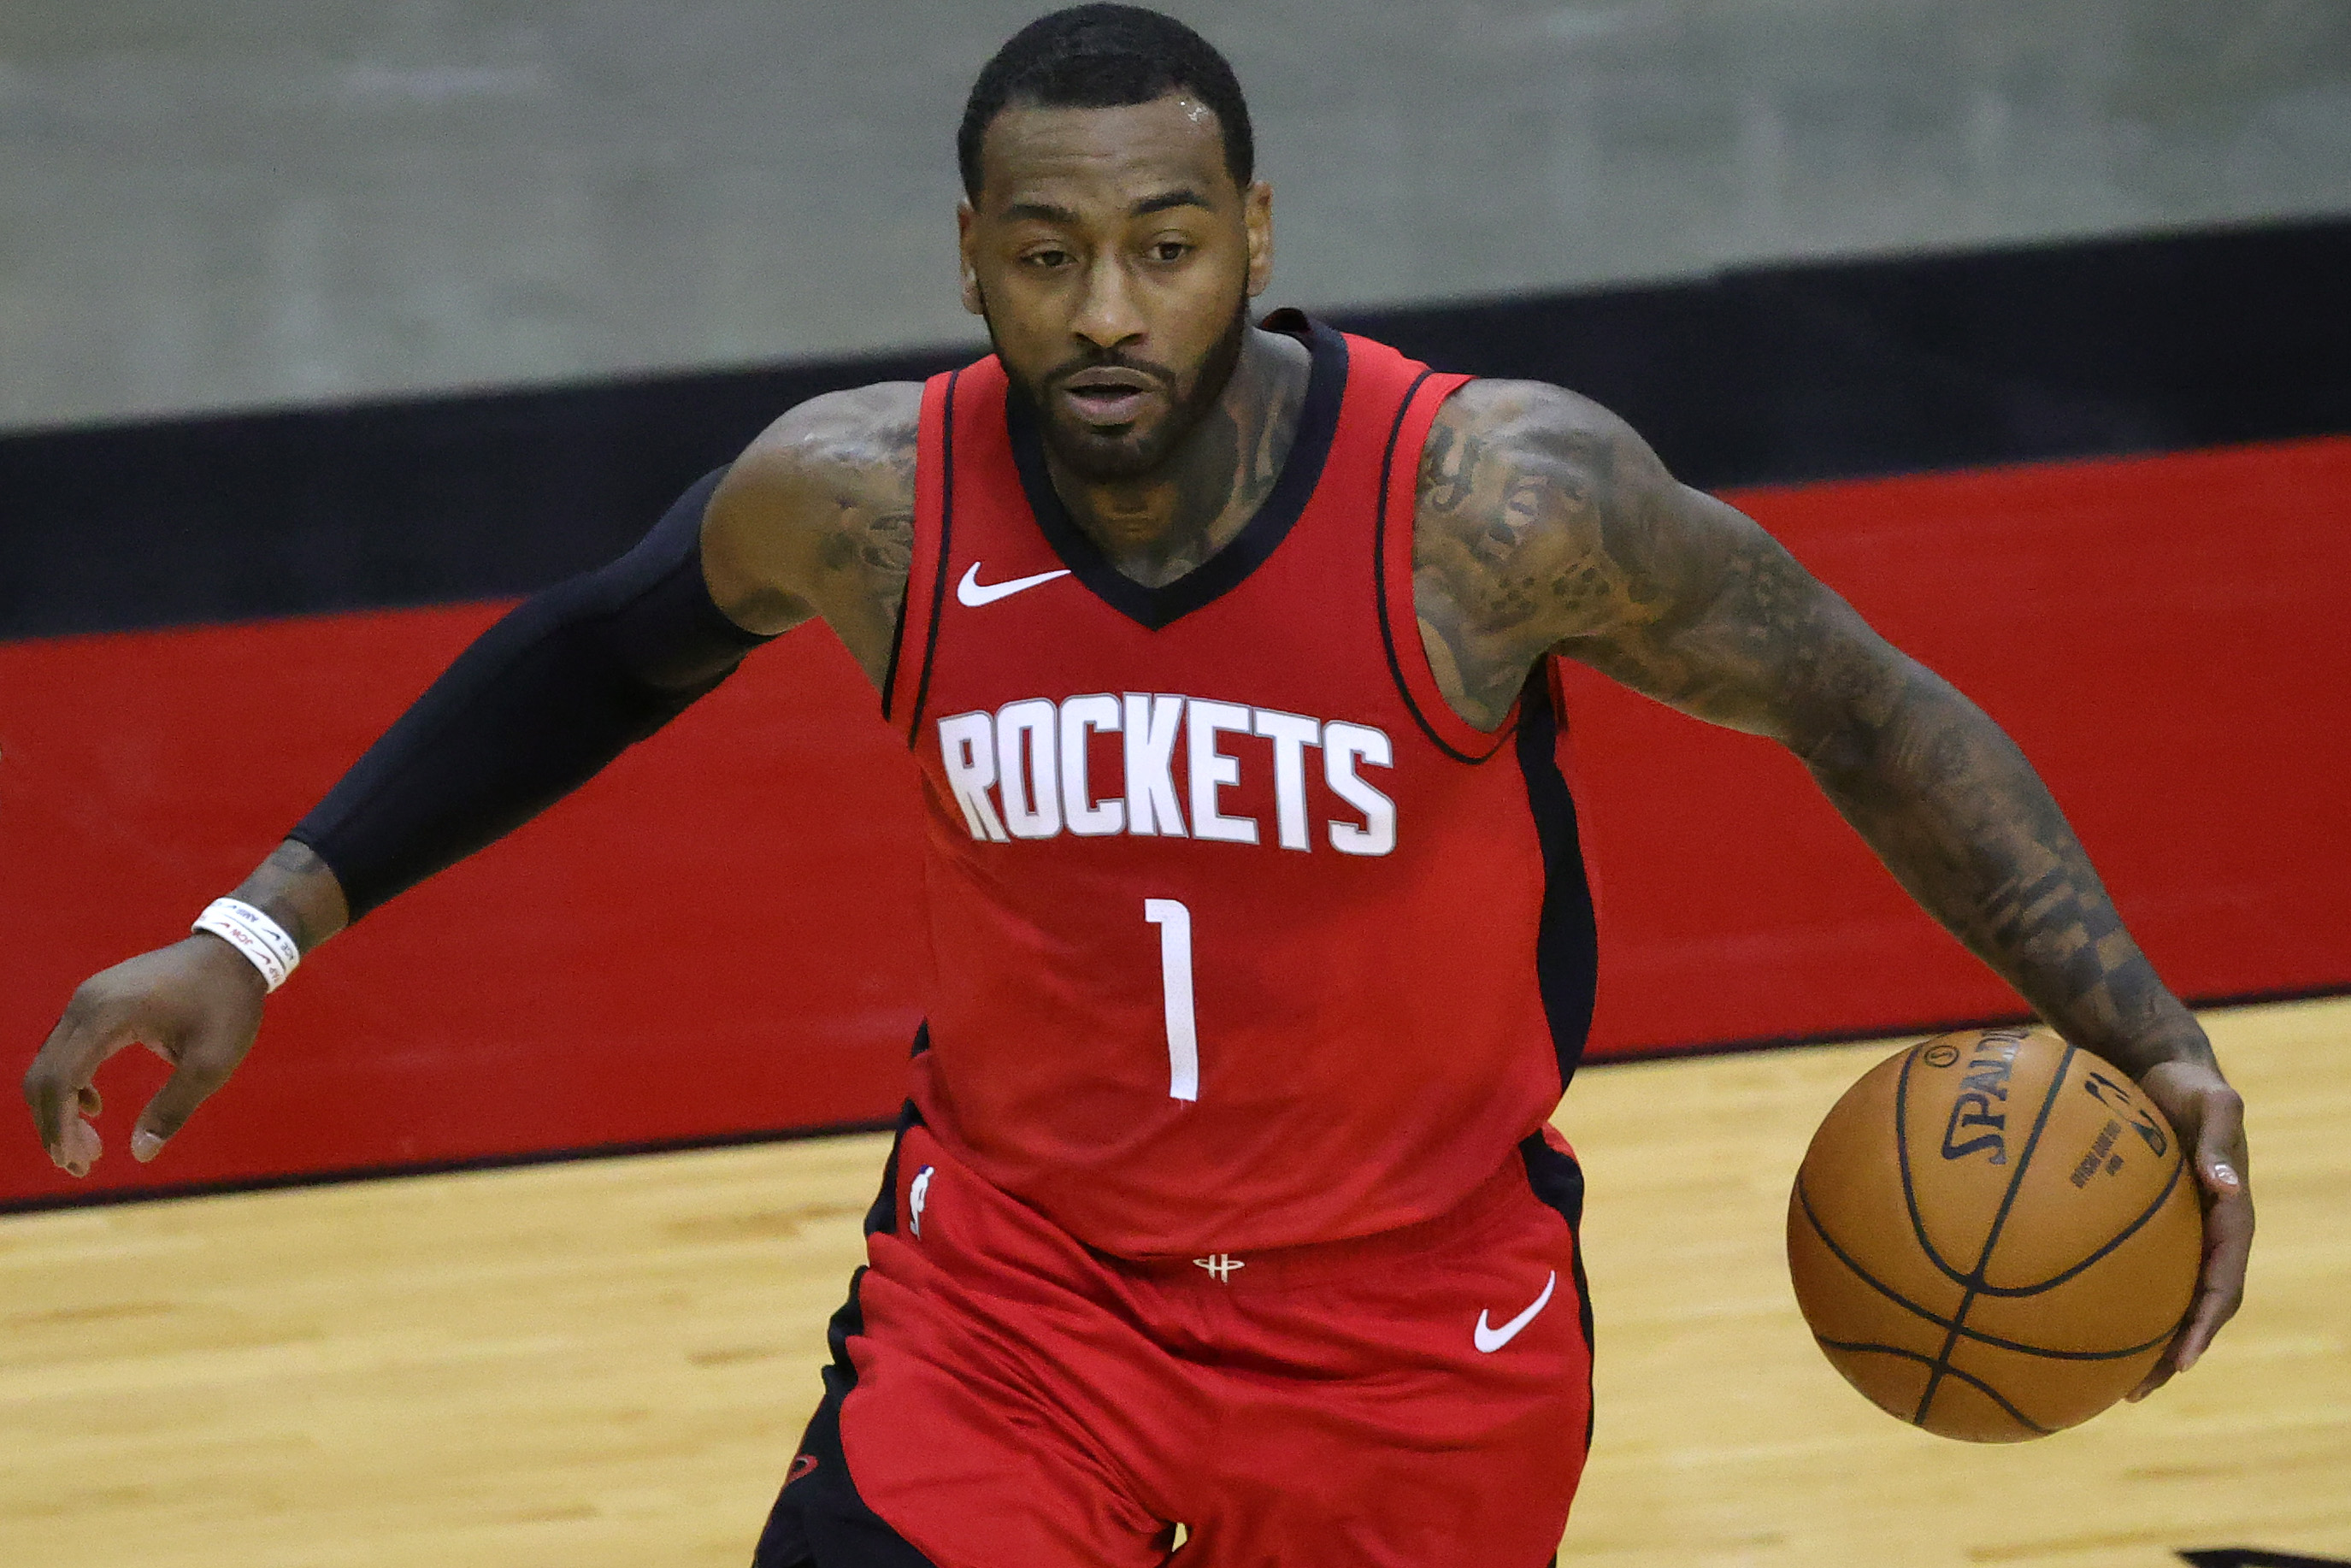 Jan 2, 2021; Houston, Texas, USA; John Wall #1 of the Houston Rockets controls the ball during the fourth quarter of a game against the Sacramento Kings at Toyota Center on January 02, 2021 in Houston, Texas.